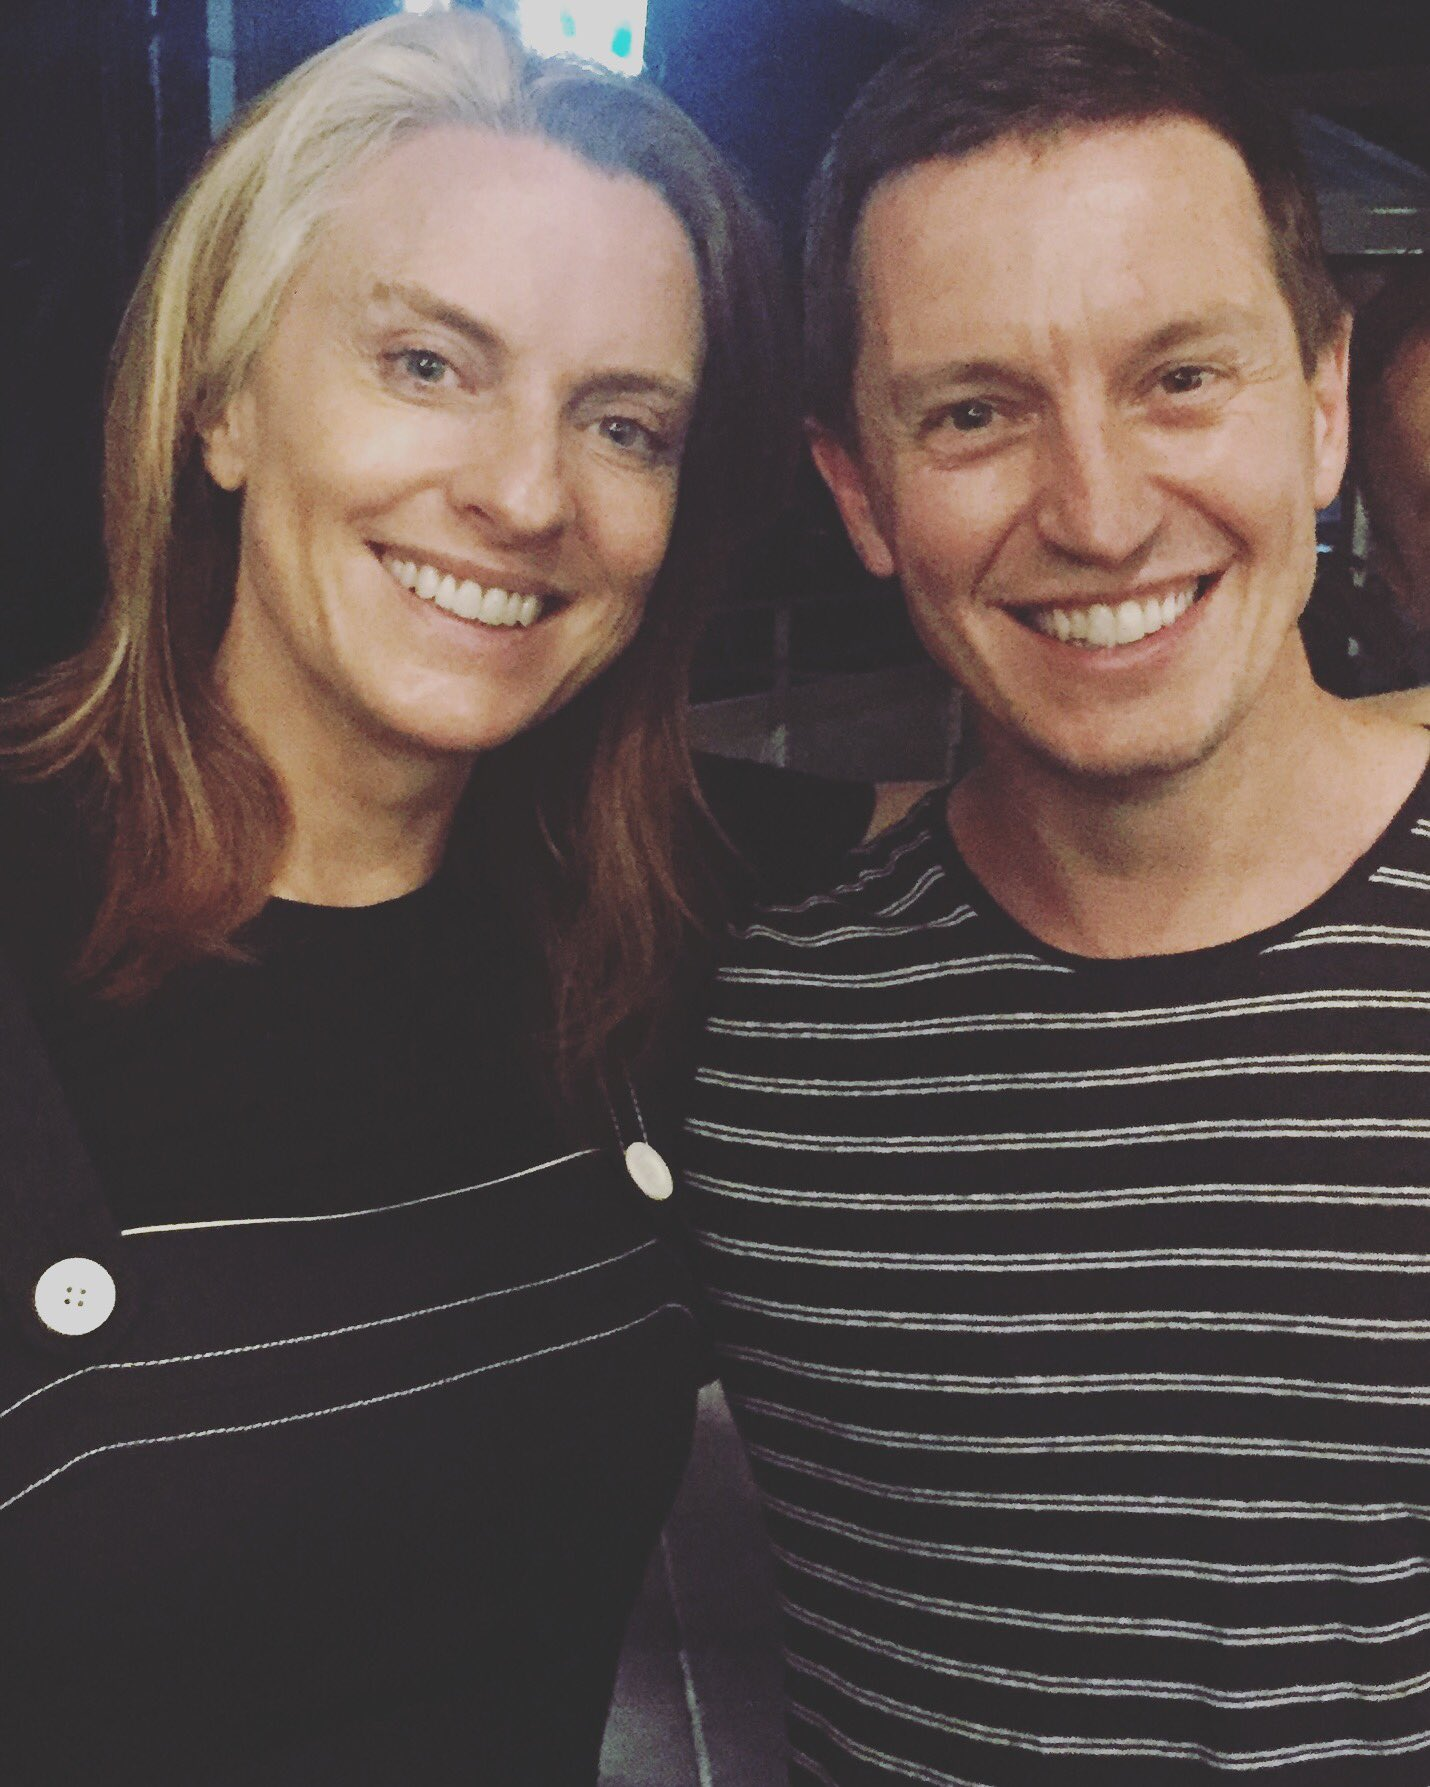 RT @Rove: Had a ball getting to share the standup stage with @gretelkilleen last night. Old school fun. https://t.co/qNUDawlJT3